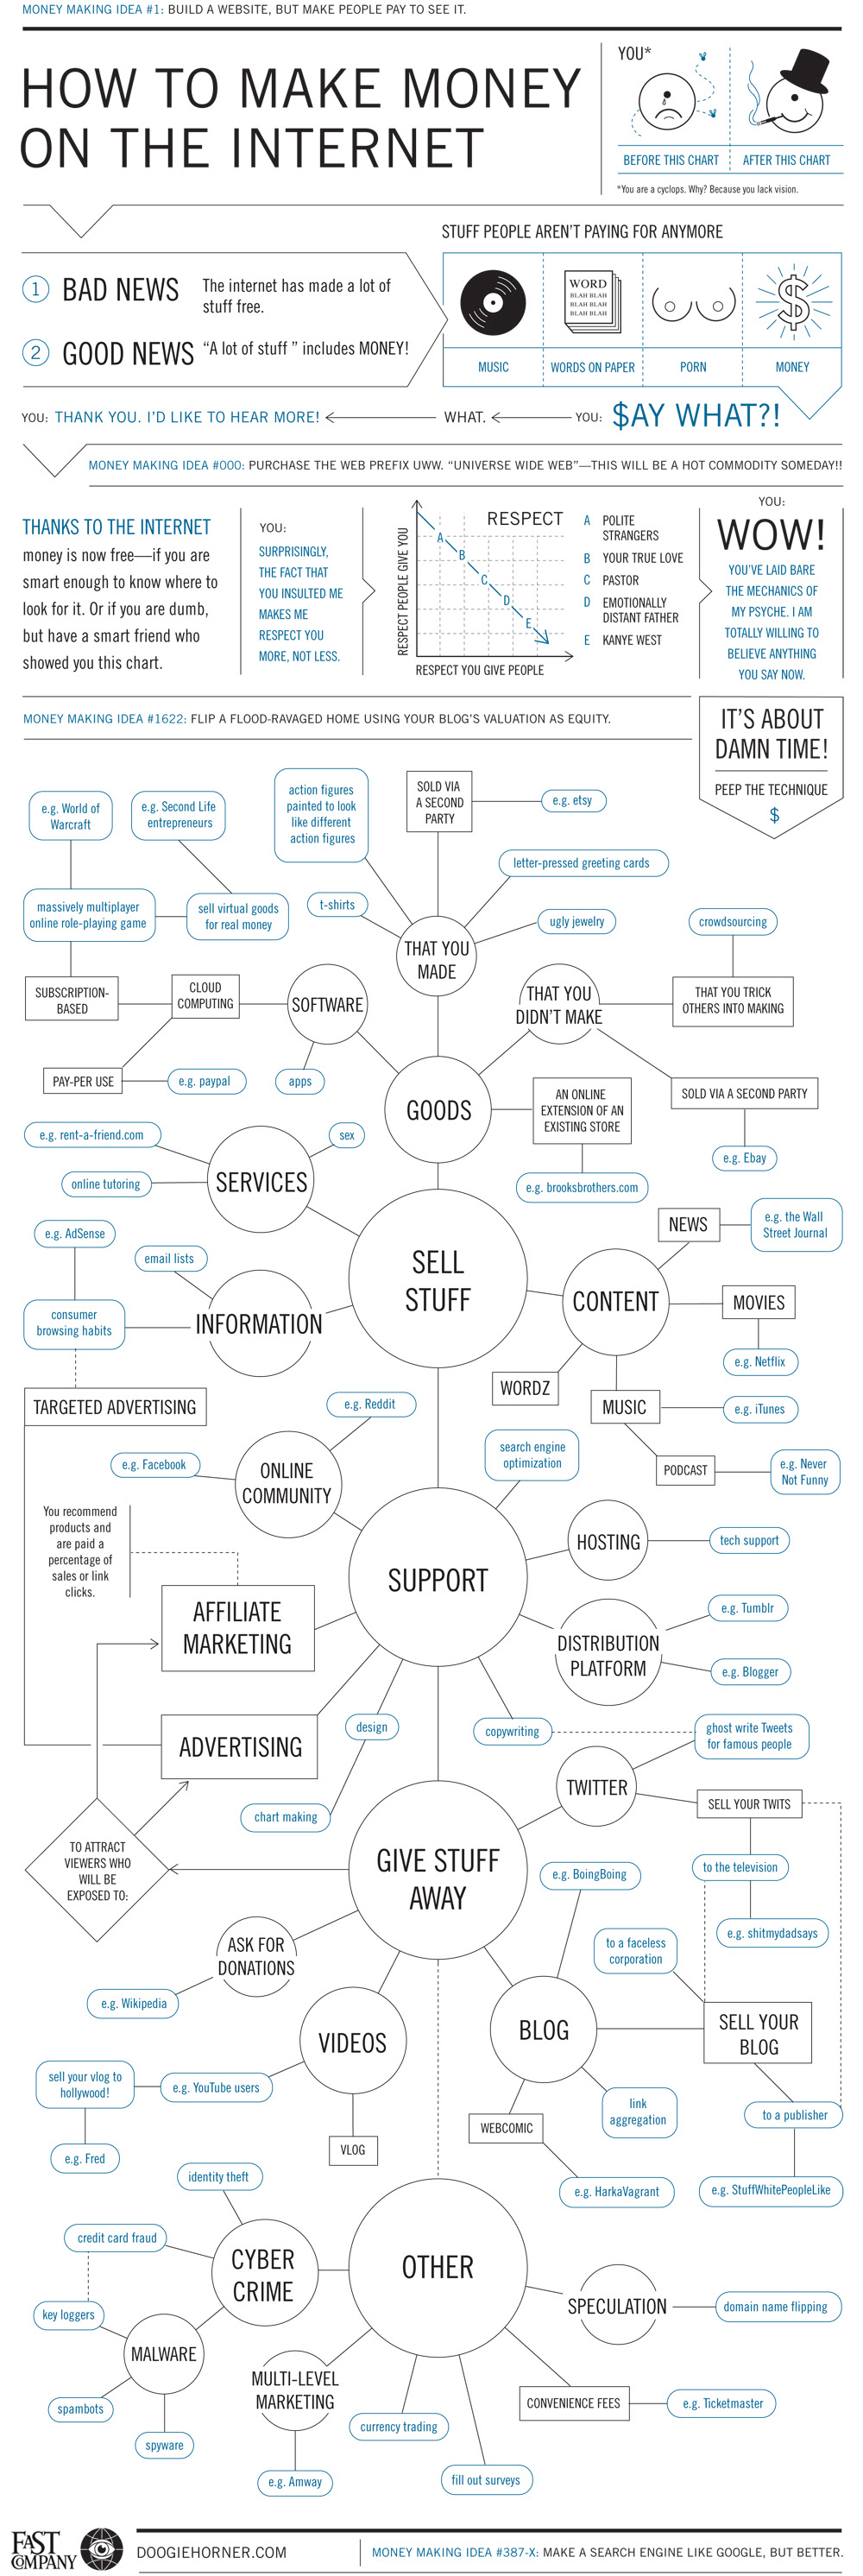 The Ultimate Web Cash Flowchart - Needs Explaination